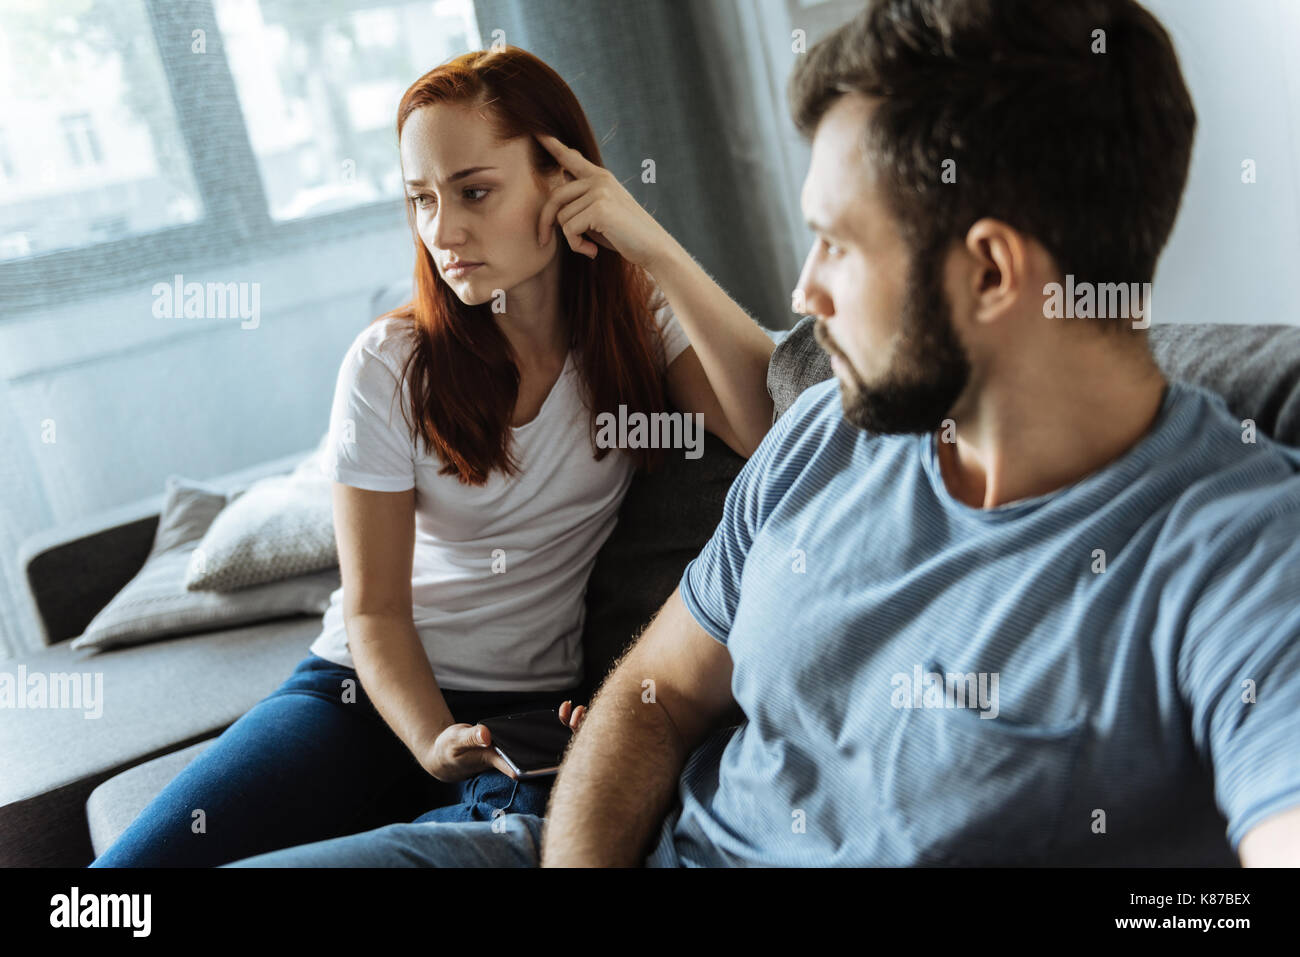 Cheerless young couple having an argument - Stock Image